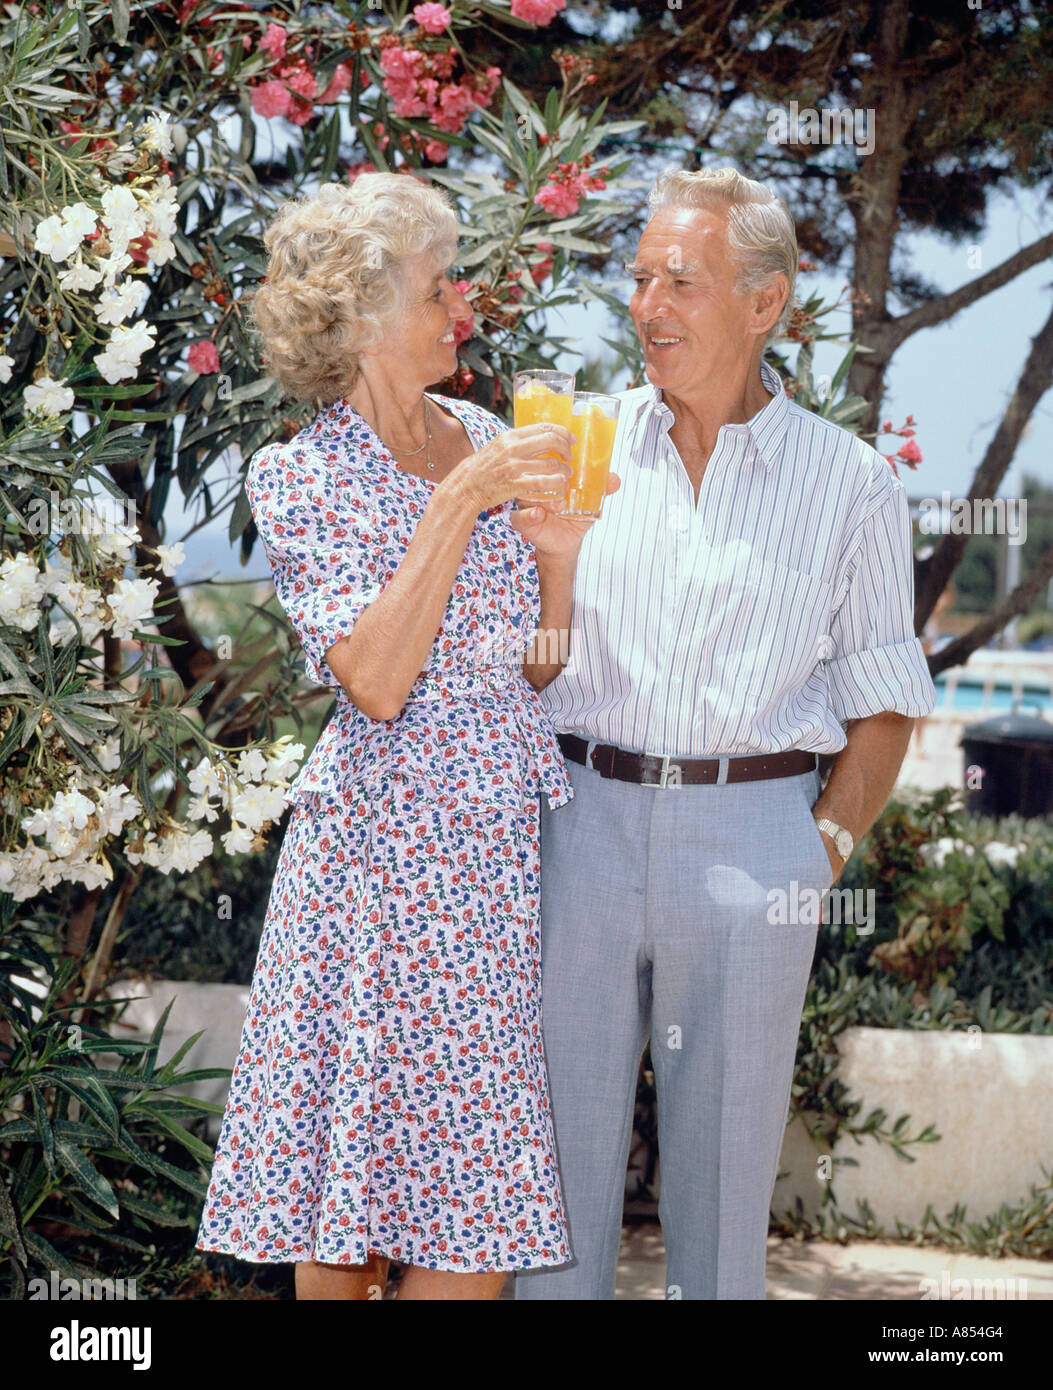 Retirement age couple on vacation, standing with glasses of orange juice on outdoor terrace. Stock Photo